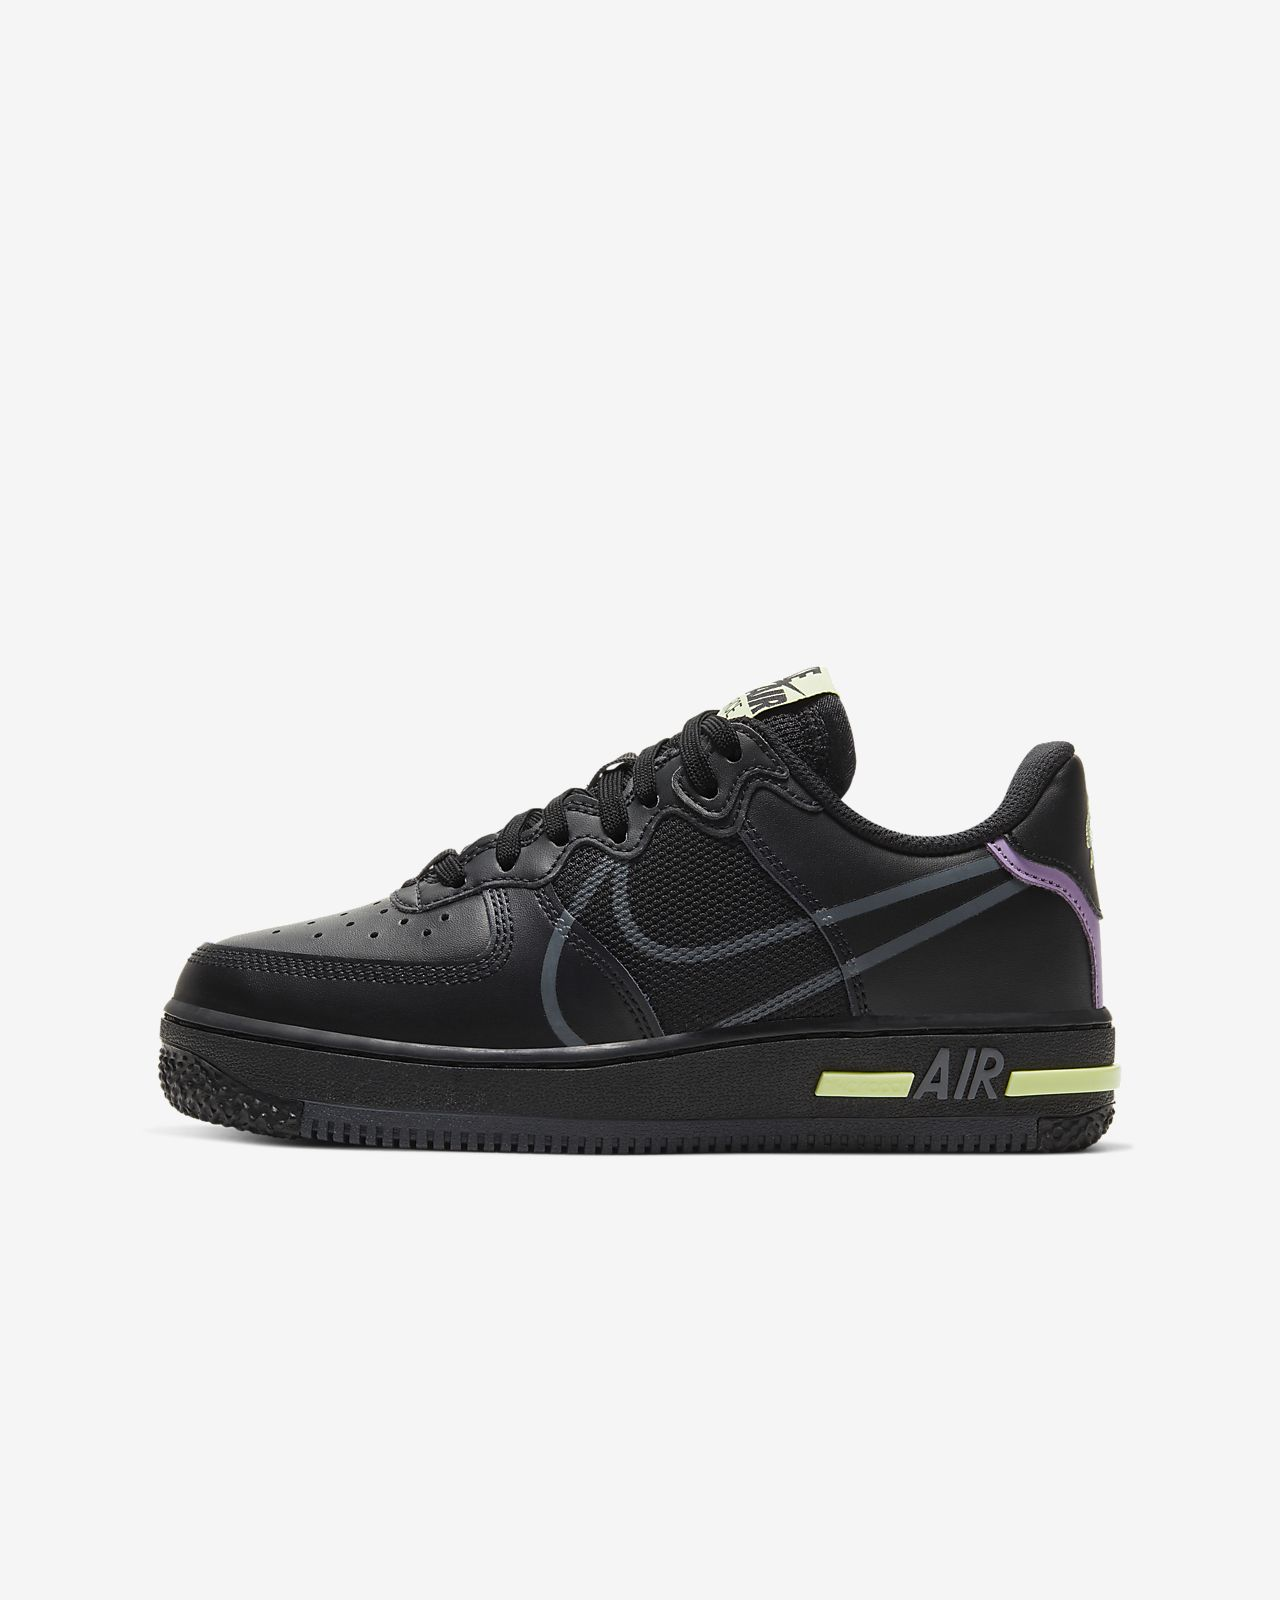 the nike air force - Online Discount -